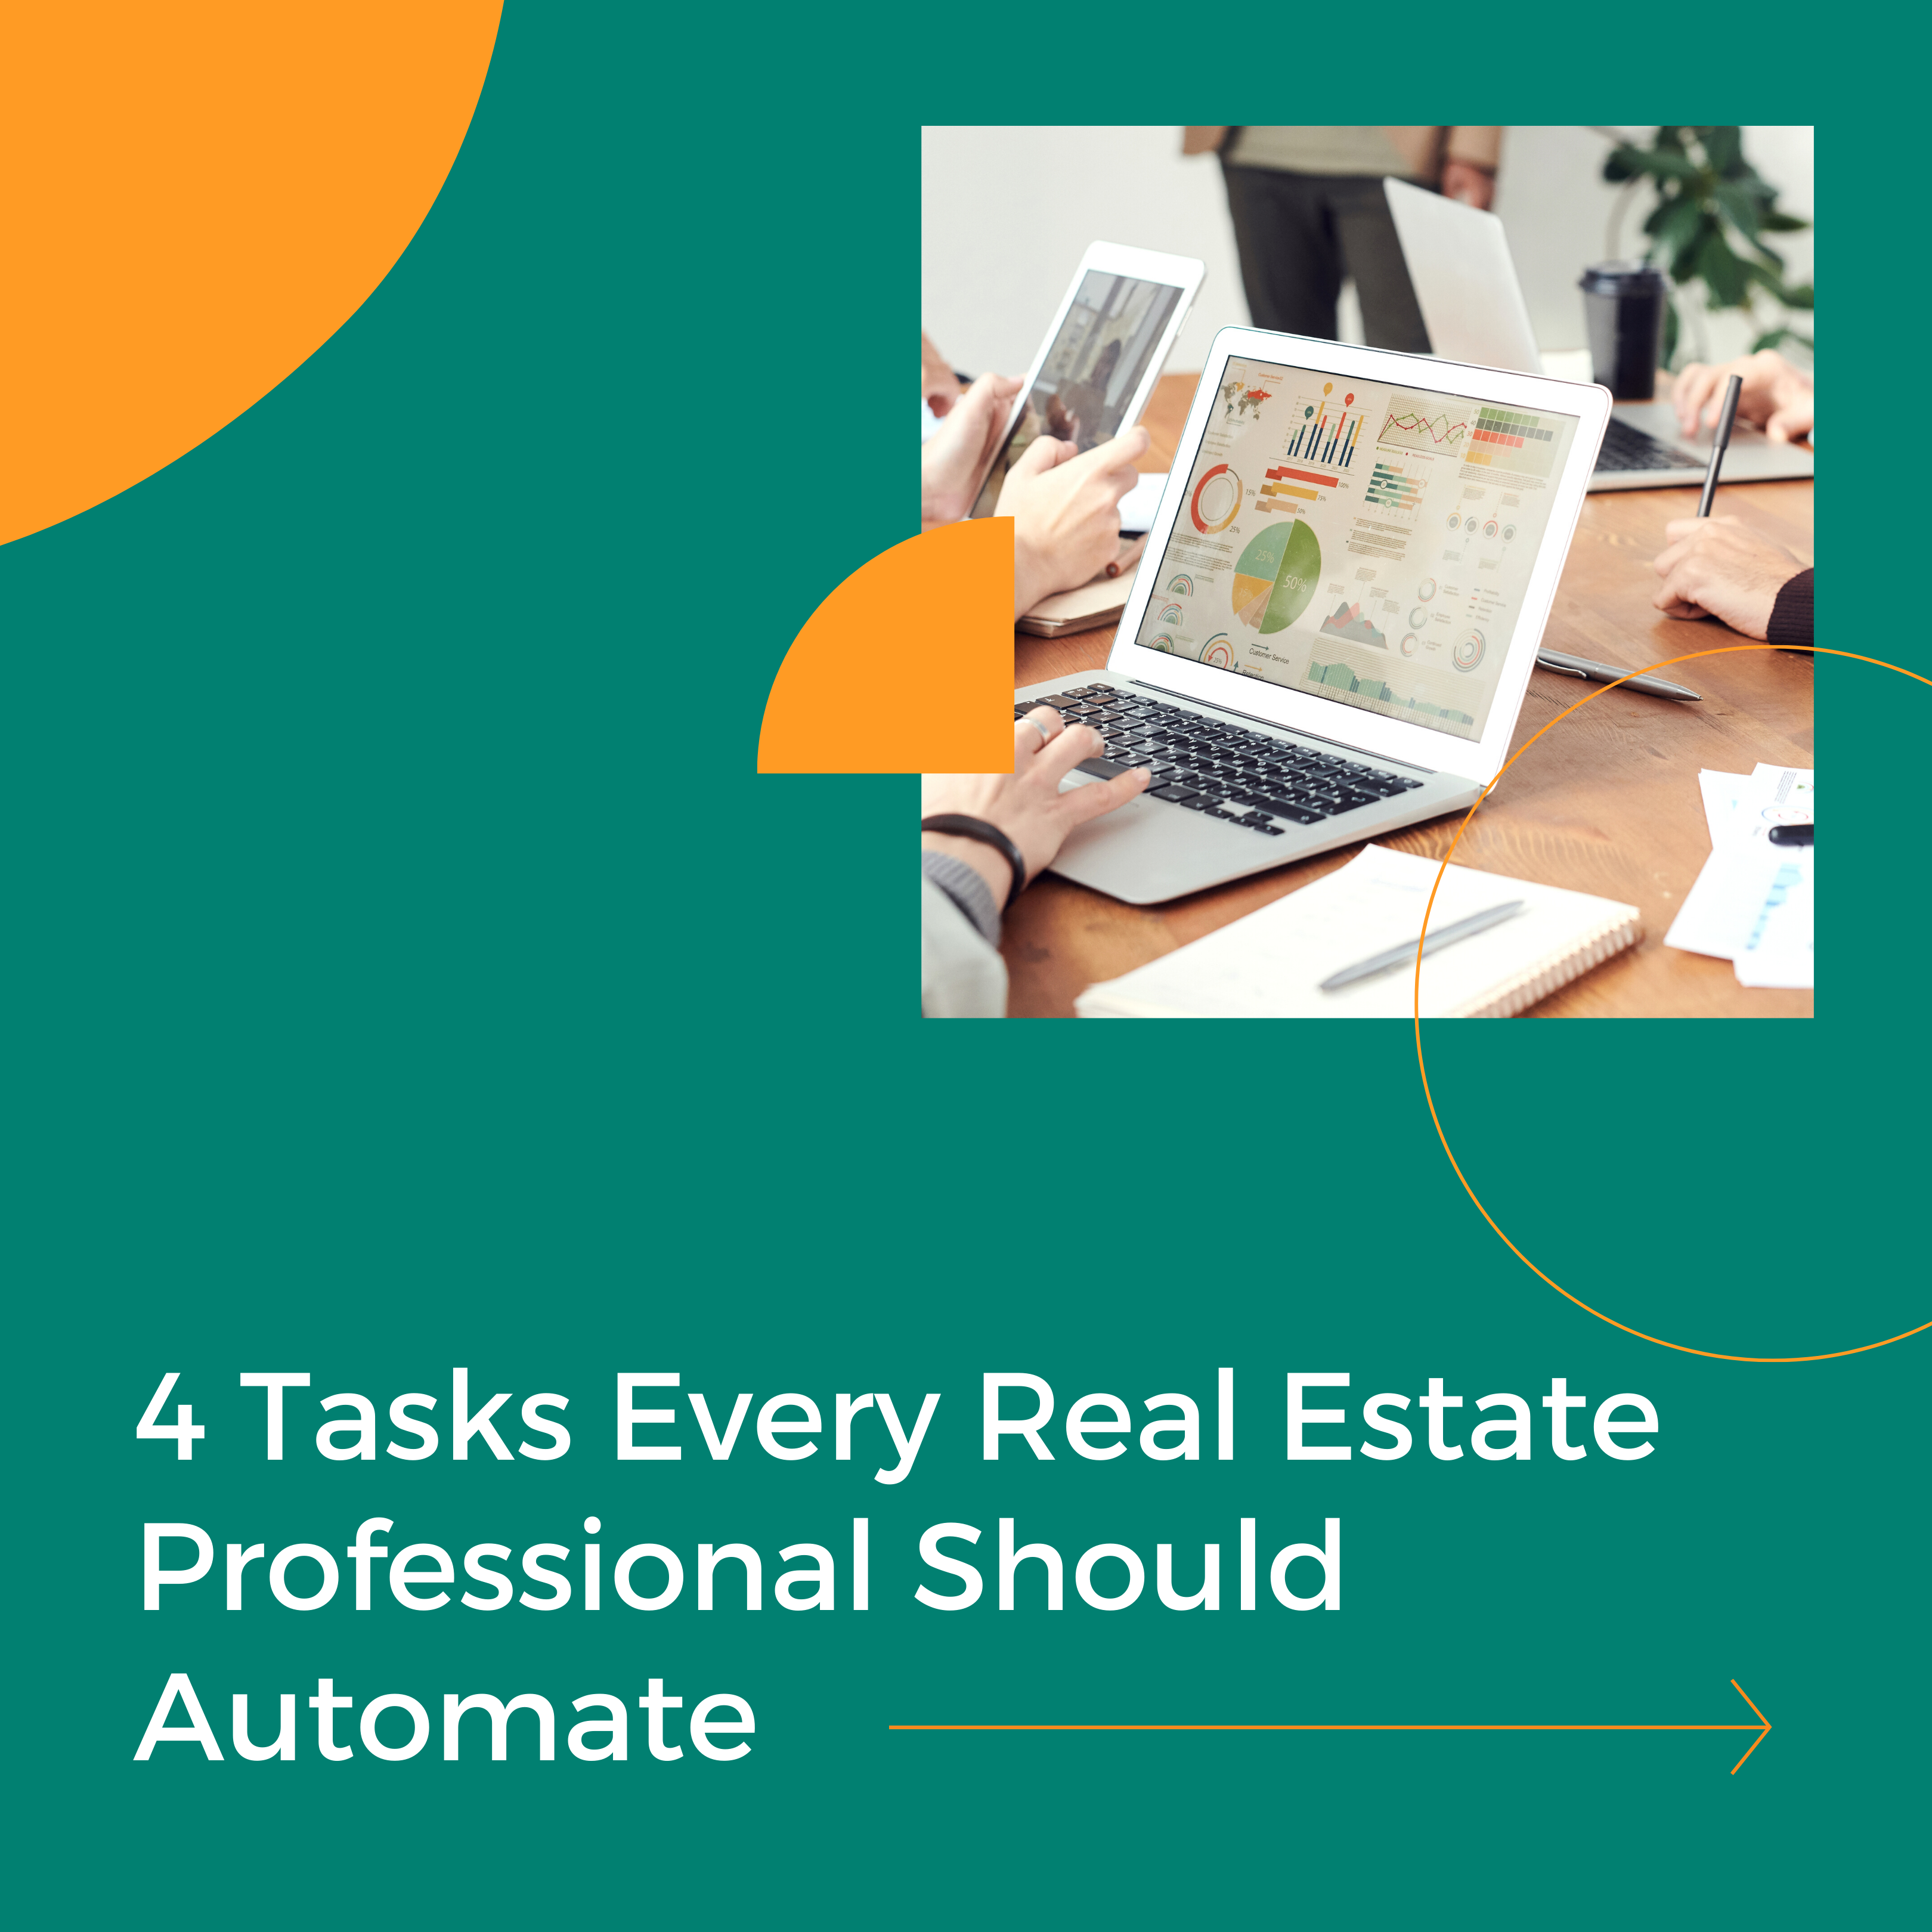 4 Tasks Every Real Estate Professional Should Automate